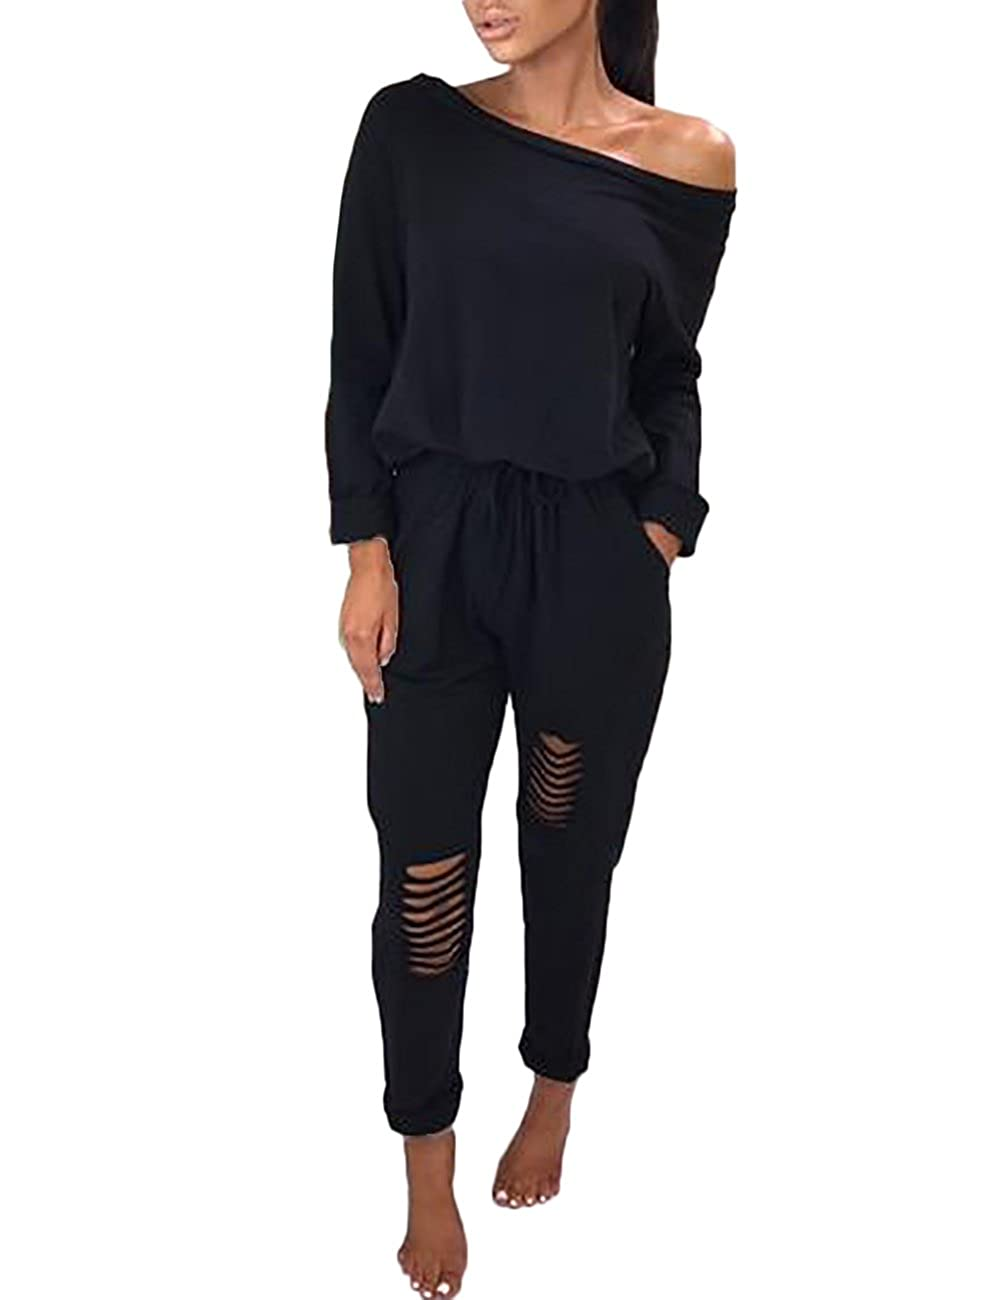 8e3cd084a5c Online Cheap wholesale Ninimour Womens Casual One-Off Shoulder Drawstring  Top Ripped Pants Jumpsuits Rompers & Overalls Suppliers